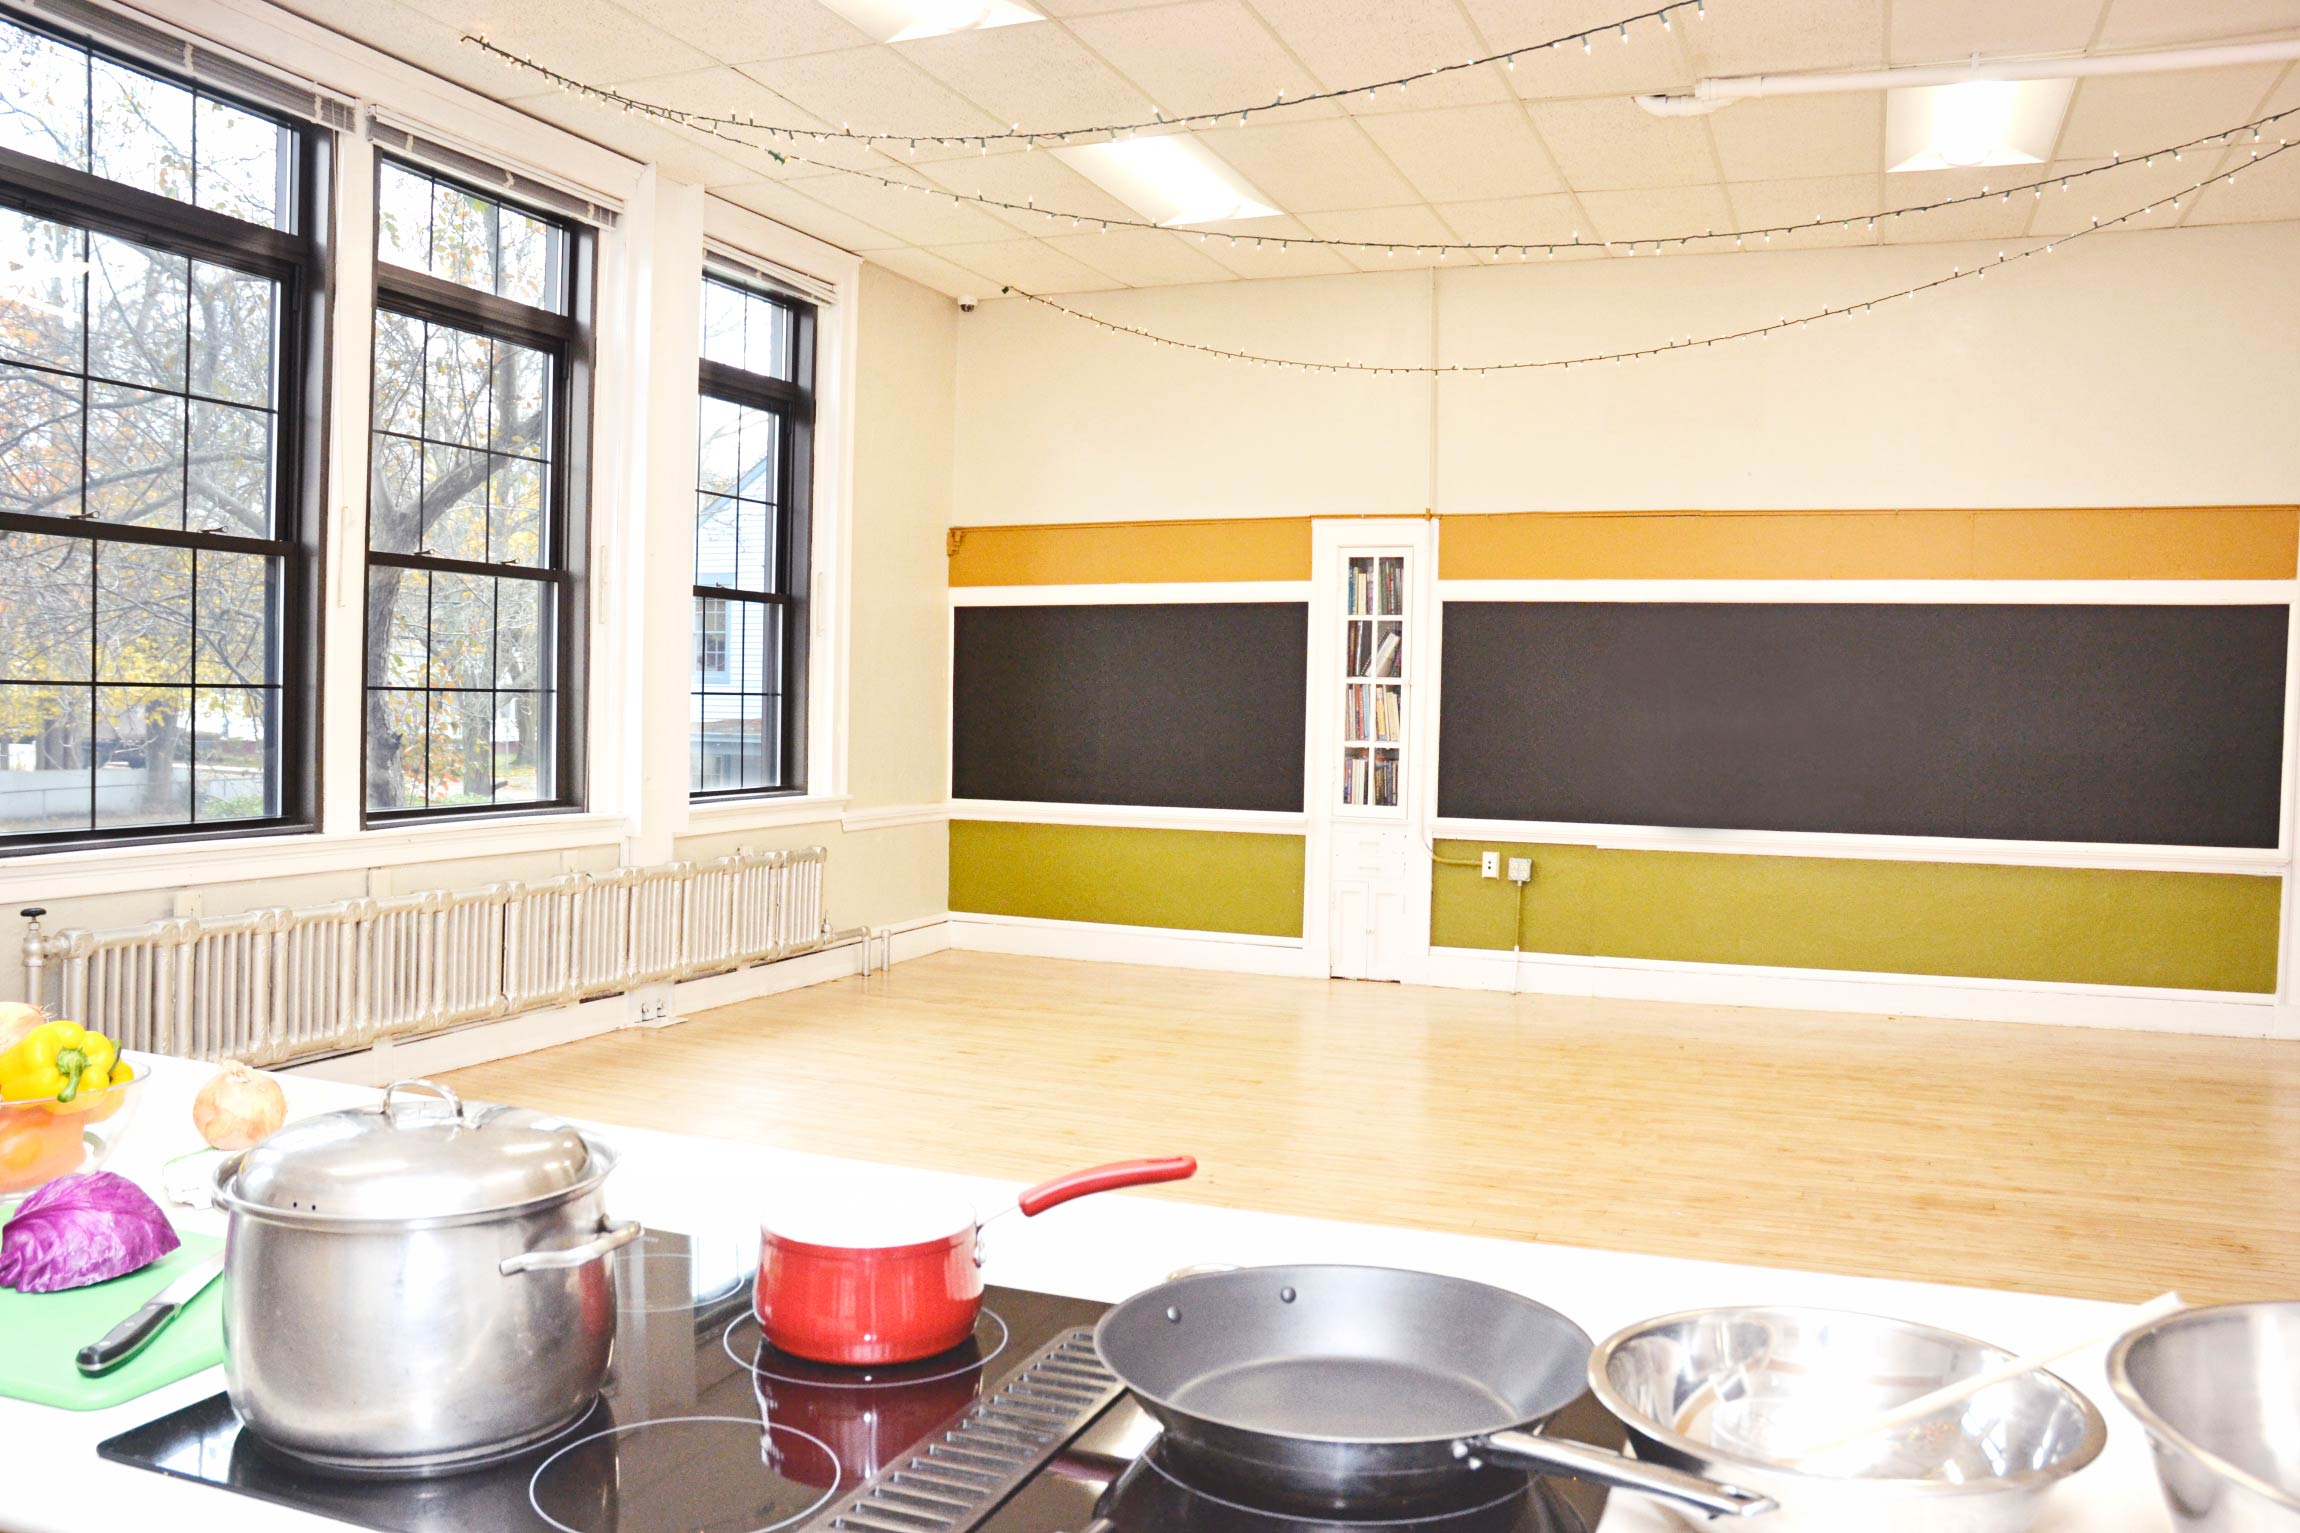 Demo Kitchen / Cooking Classroom at Hope & Main